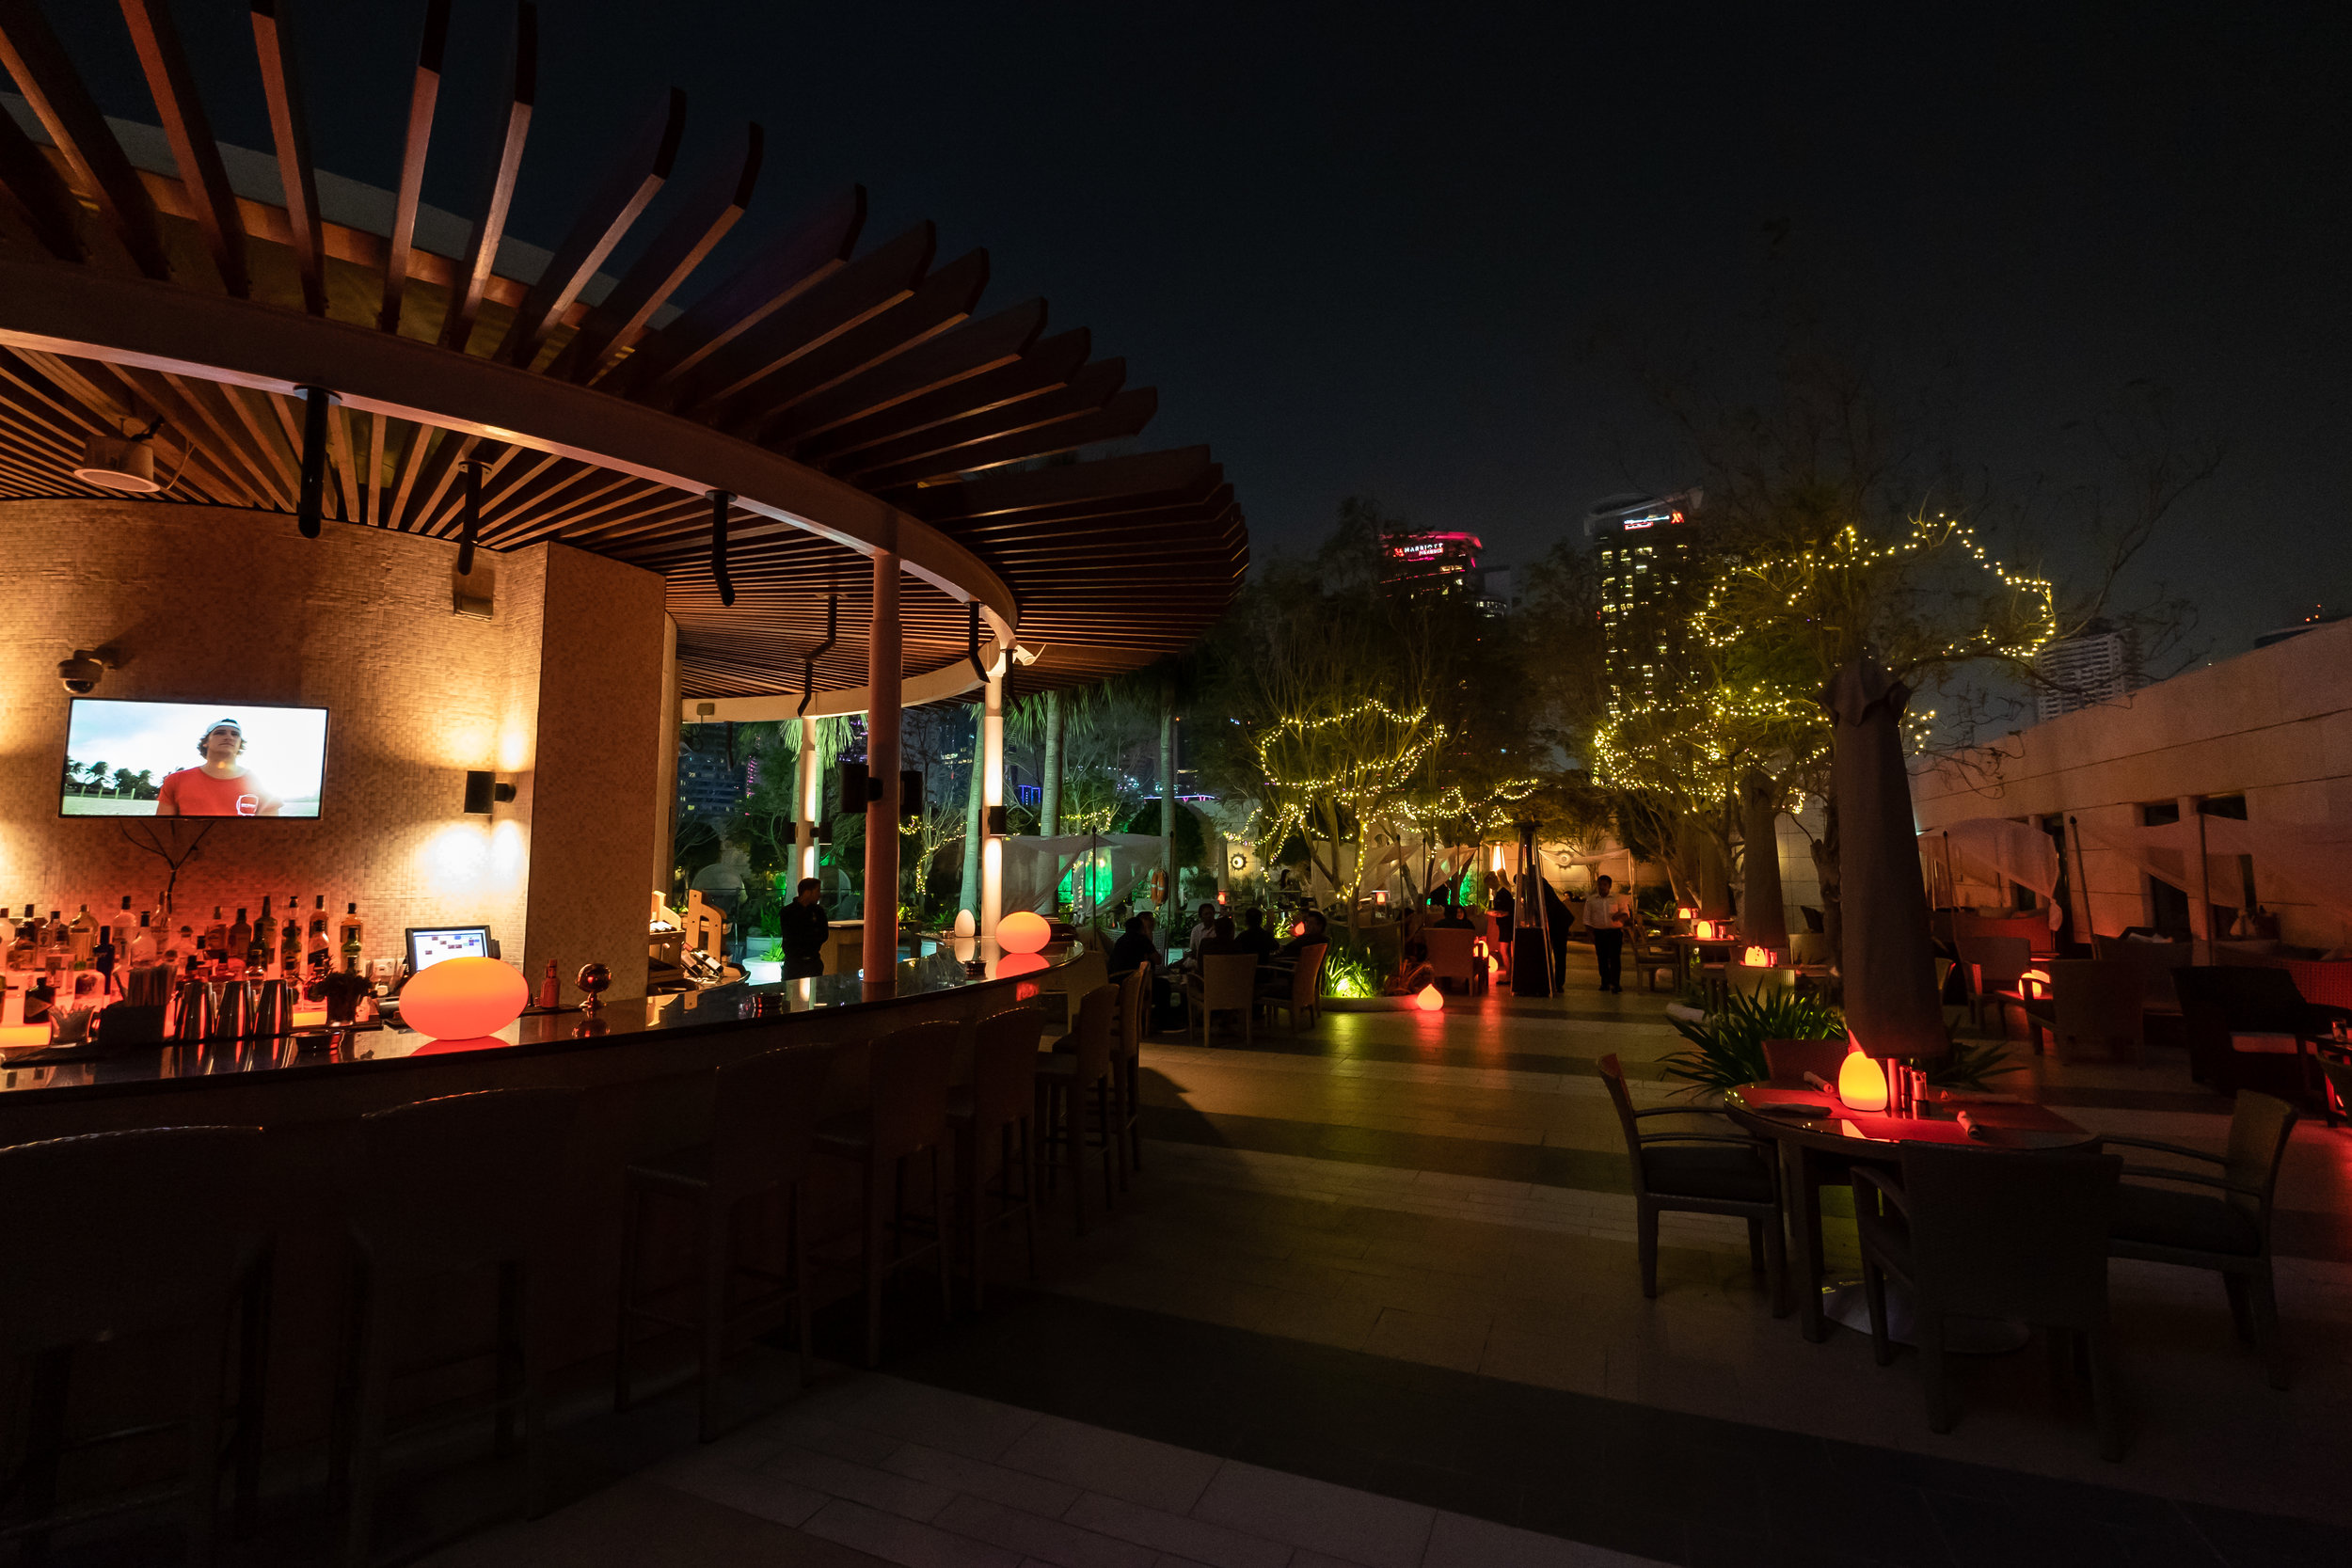 The Shisha Garden Bar at the Shangri-La